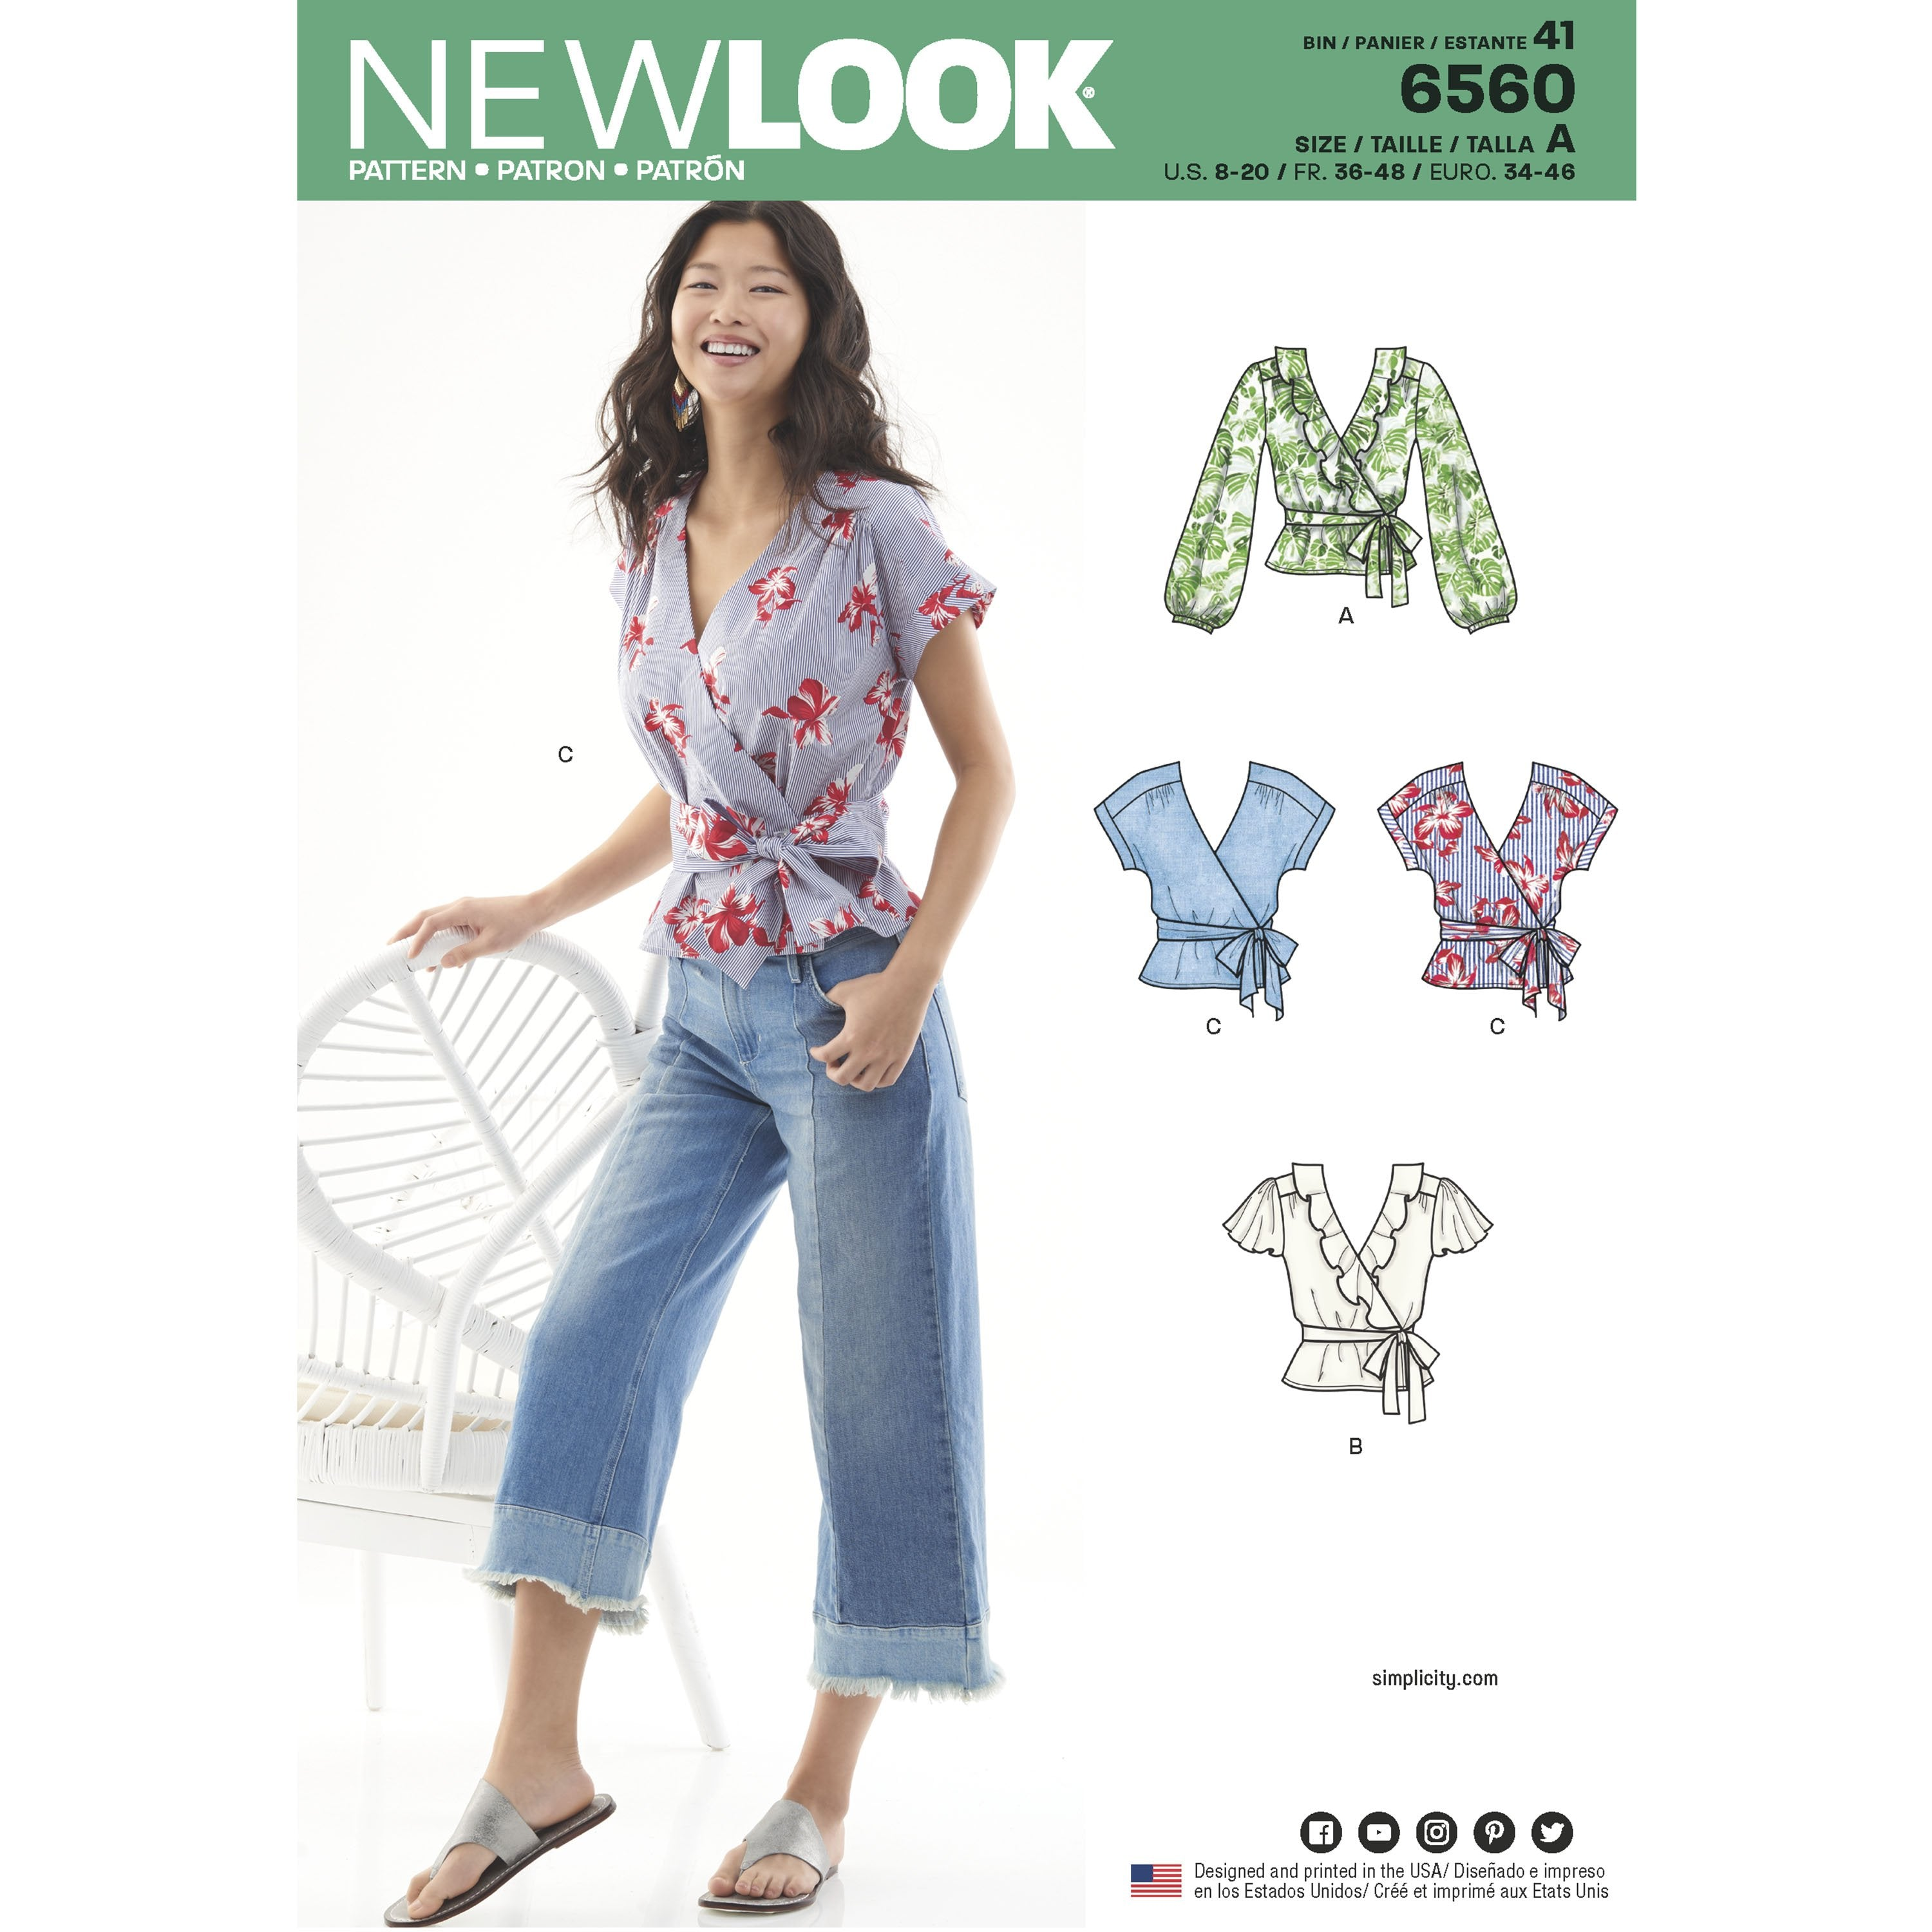 New Look 6560 sewing pattern.